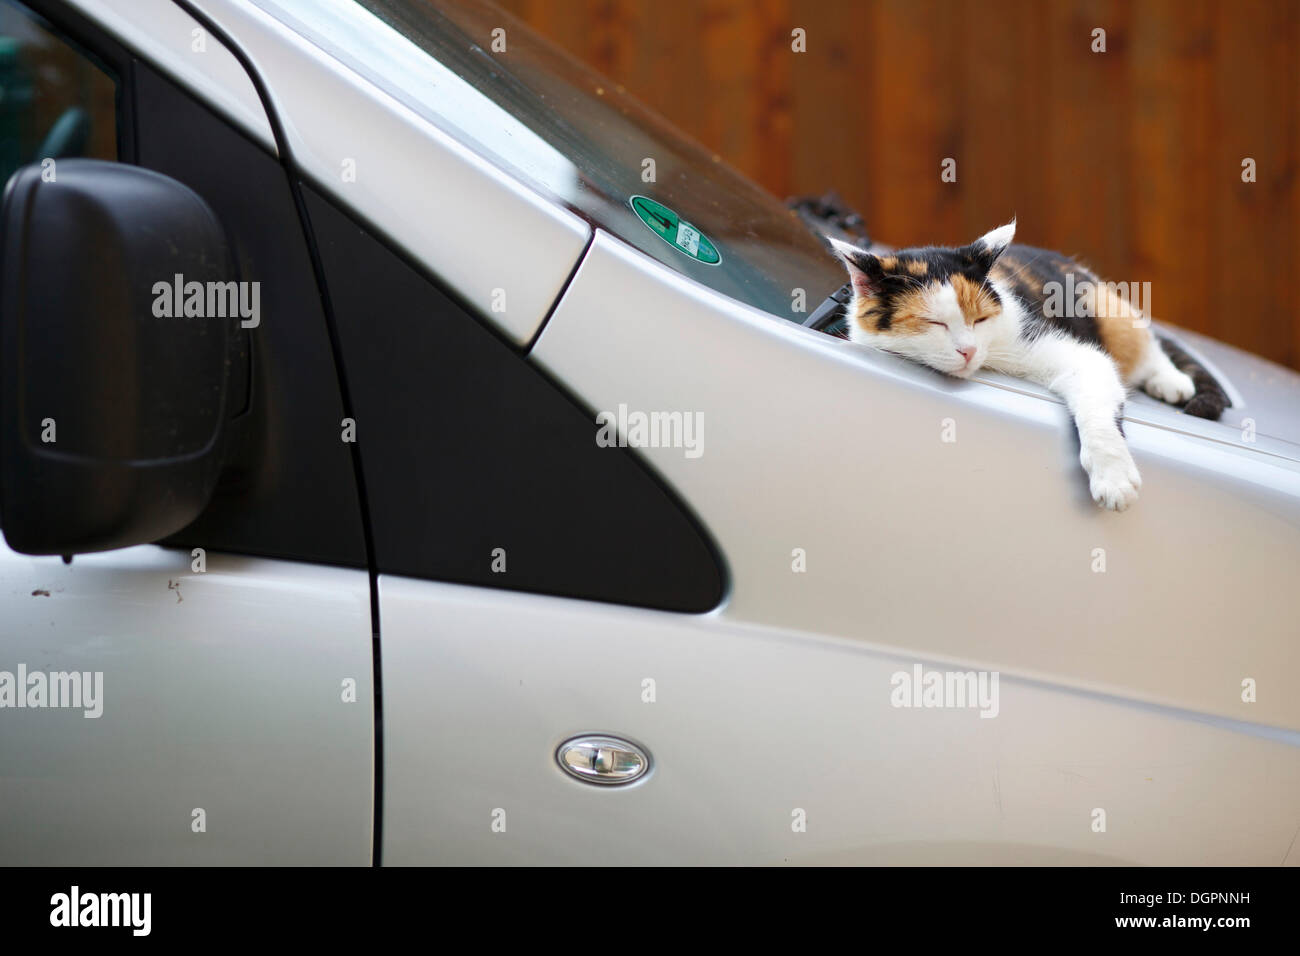 Cat resting between the windshield and hood of a car - Stock Image